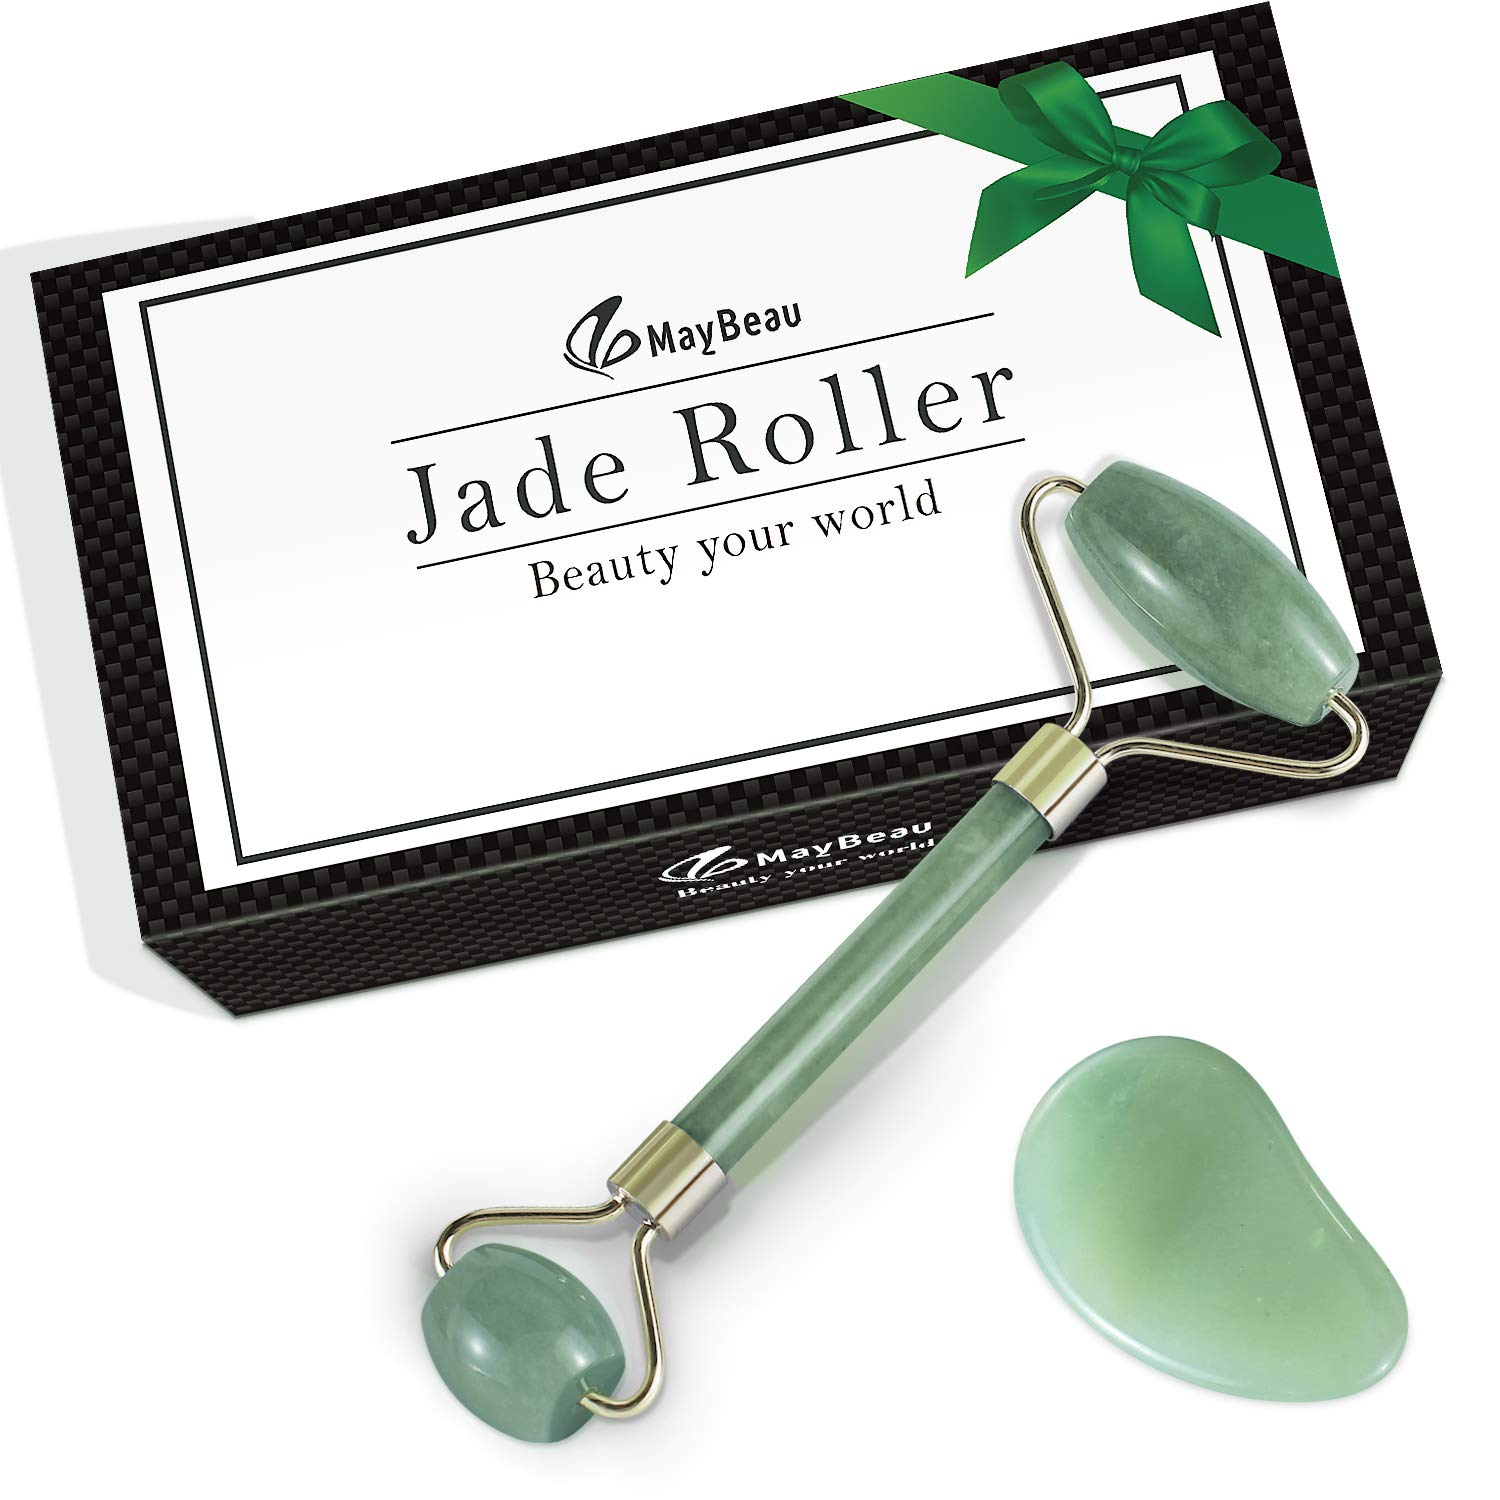 MayBeau Facial Jade Roller and Gua Sha Scrap Set,100% Natural Jade Stone Massager Anti Aging Facial Therapy,Rejuvenates Face and Neck Skin,Face Slimmer BESTOPE CA